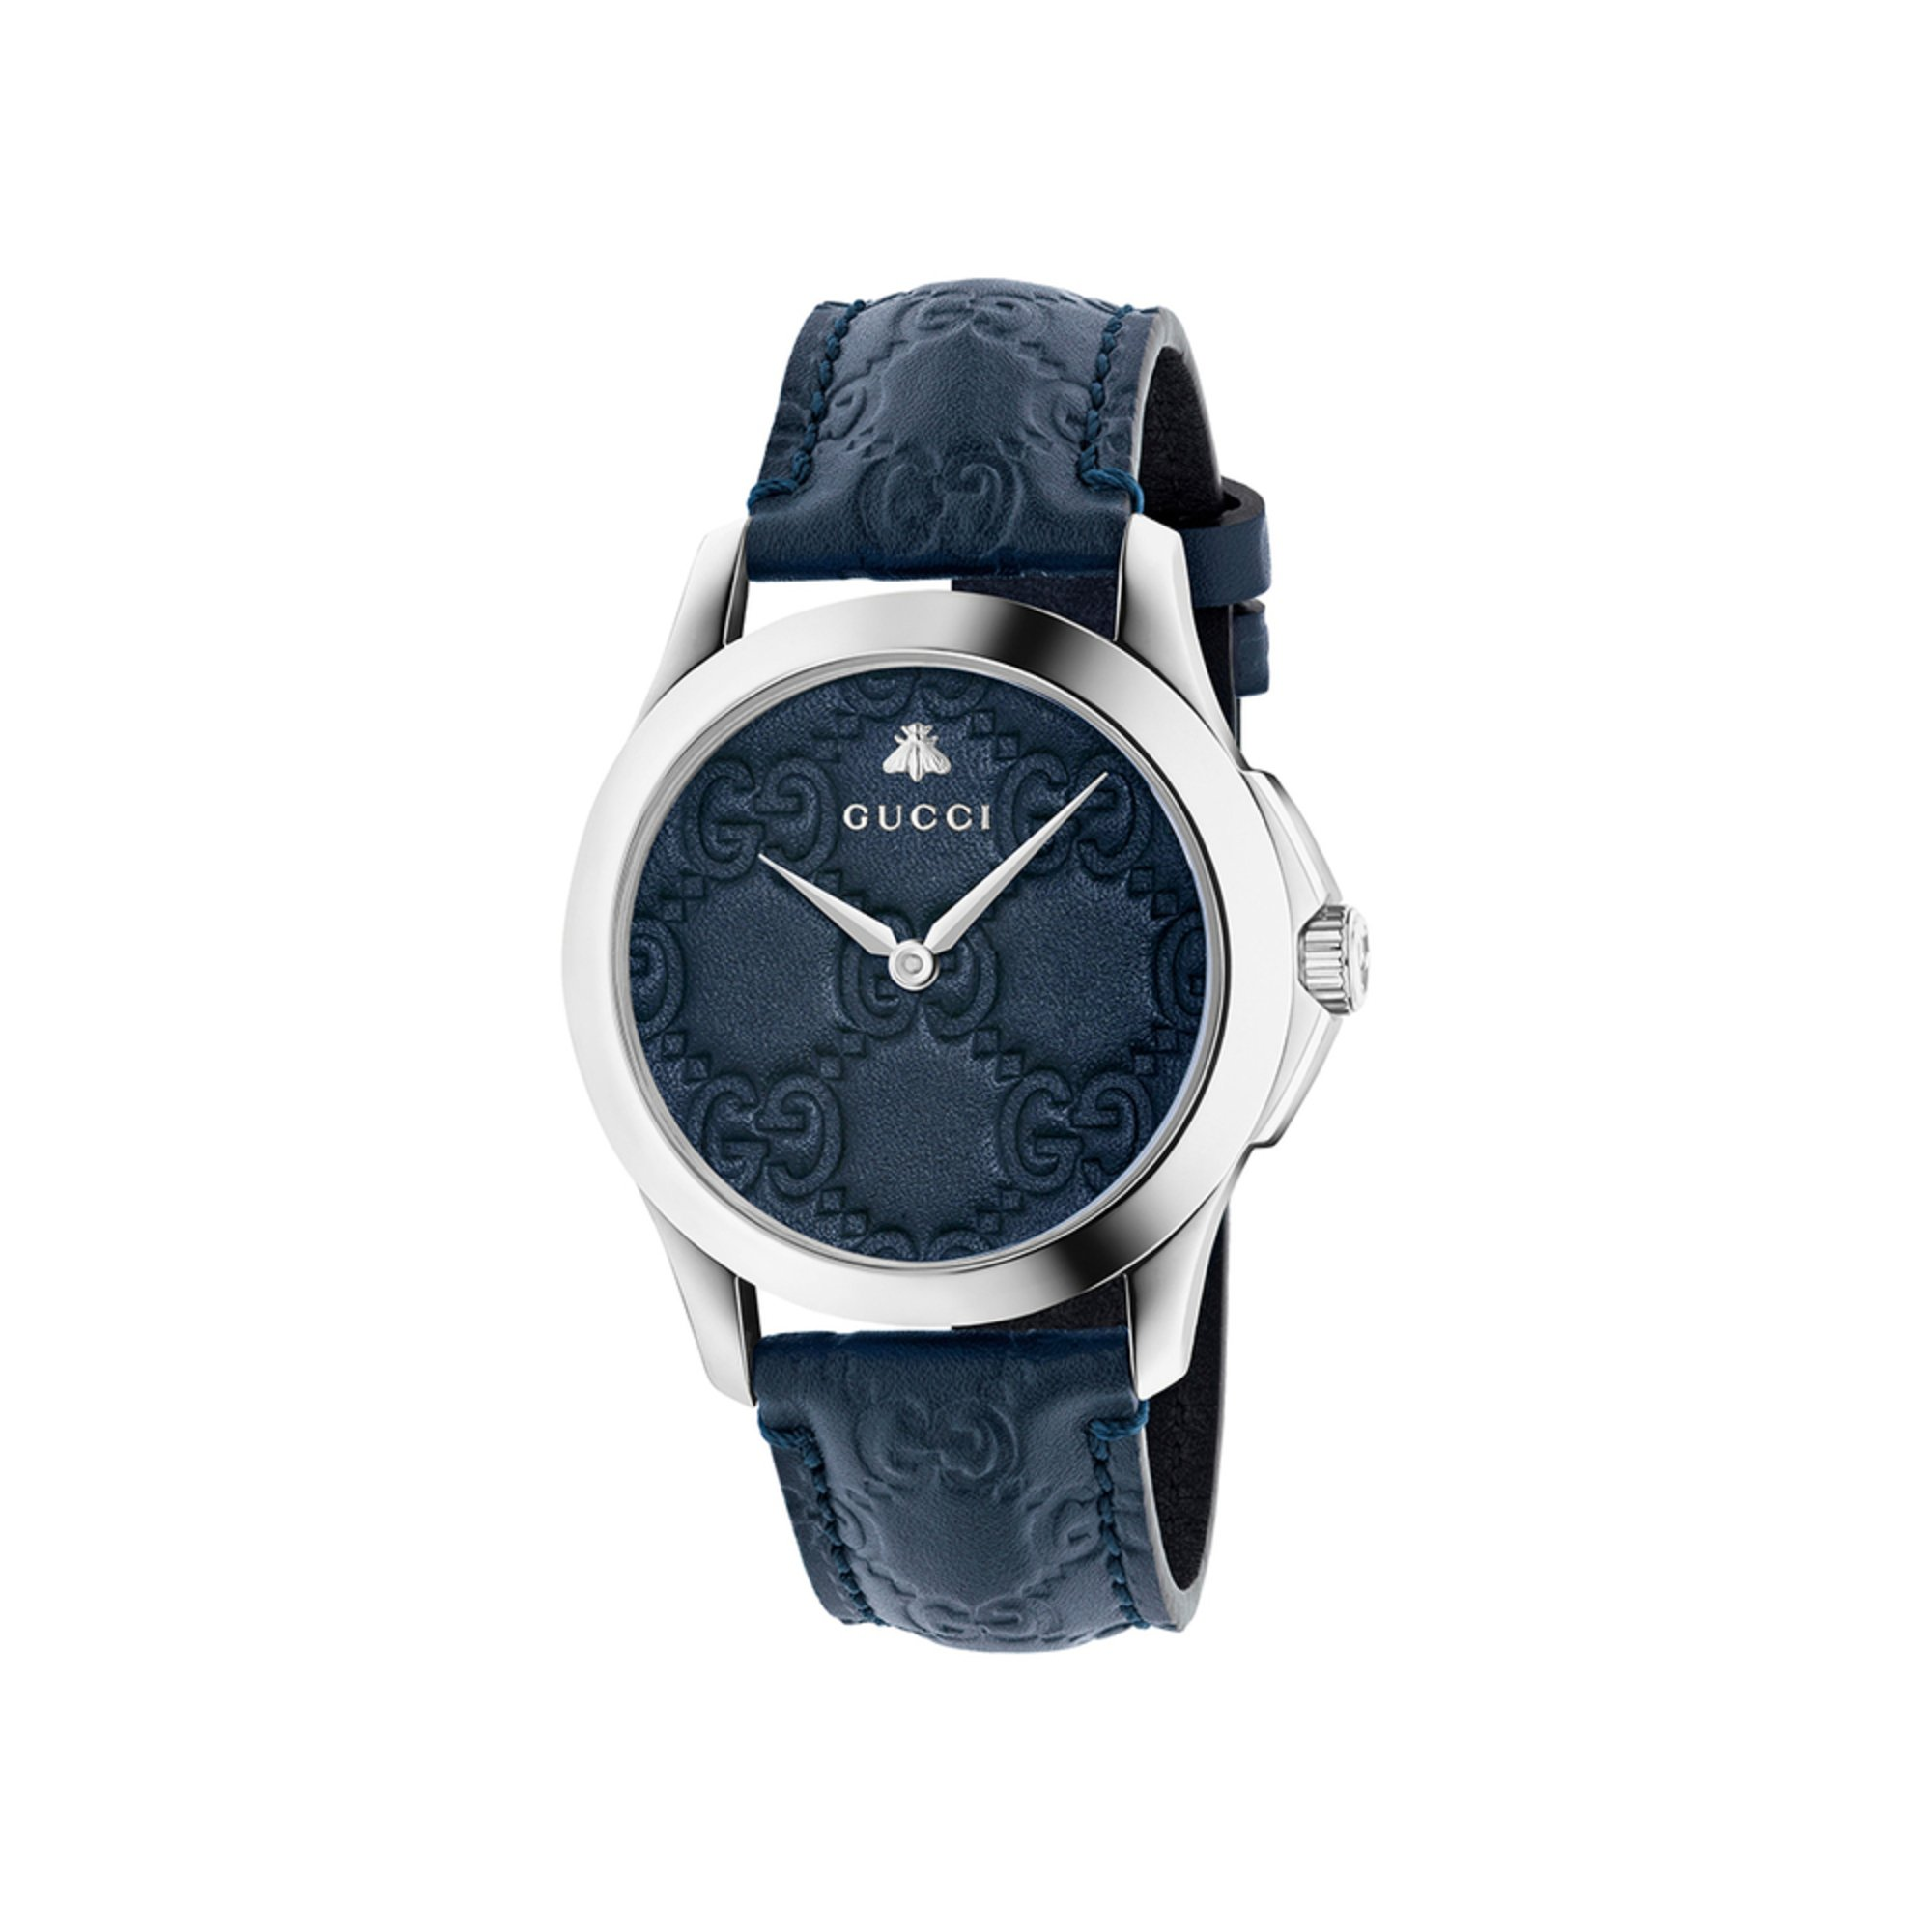 fbe45099d6d Gucci Women s G-timeless Blue Leather Watch